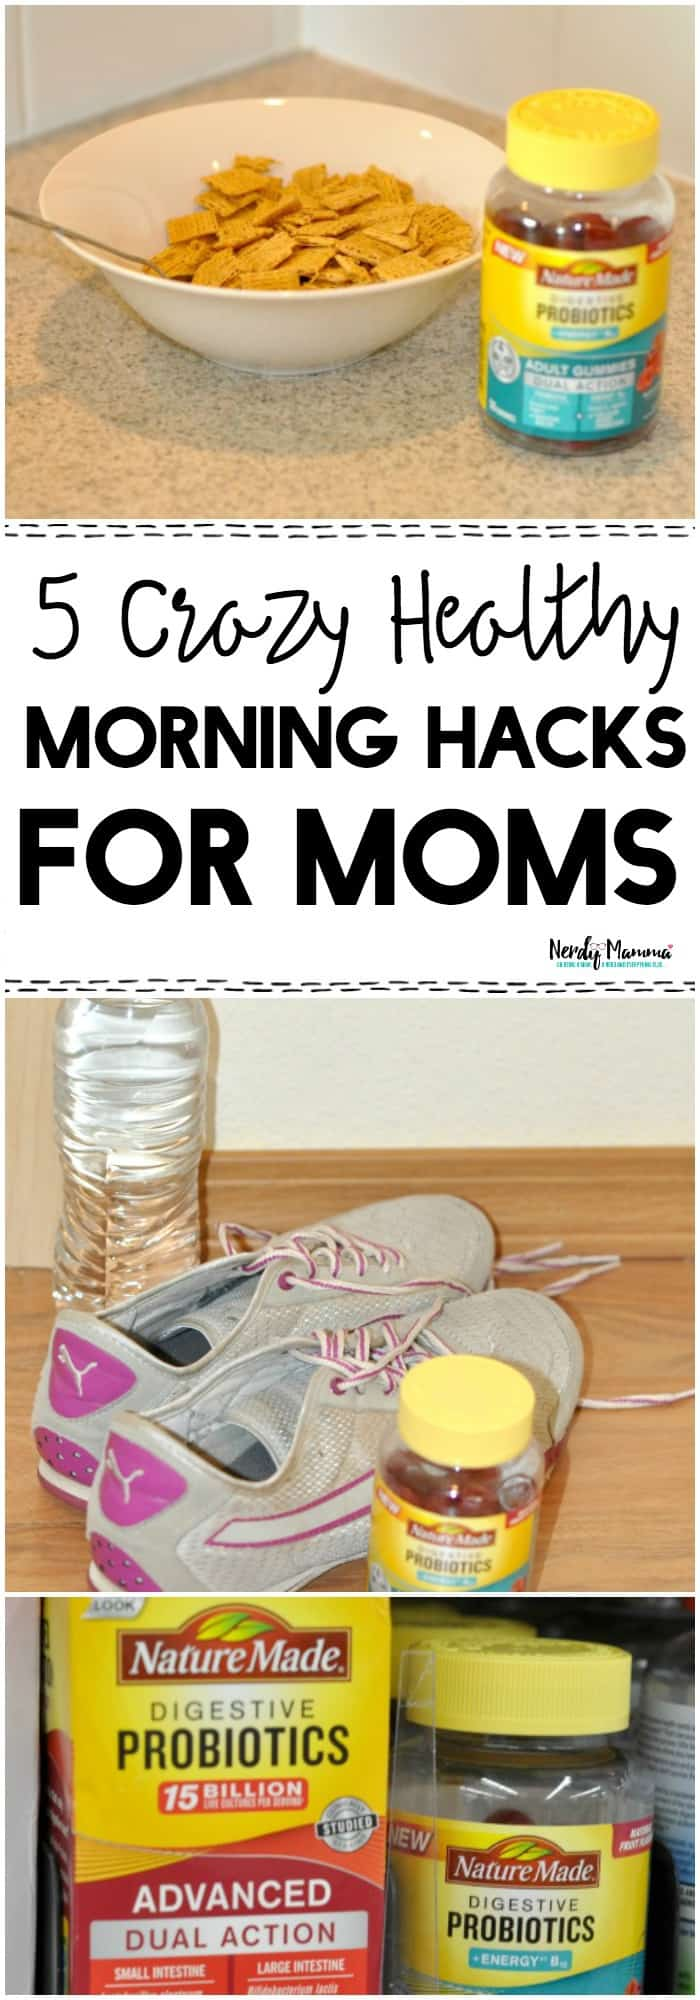 OMG, you have GOT to read these 5 crazy healthy morning hacks for busy moms!!